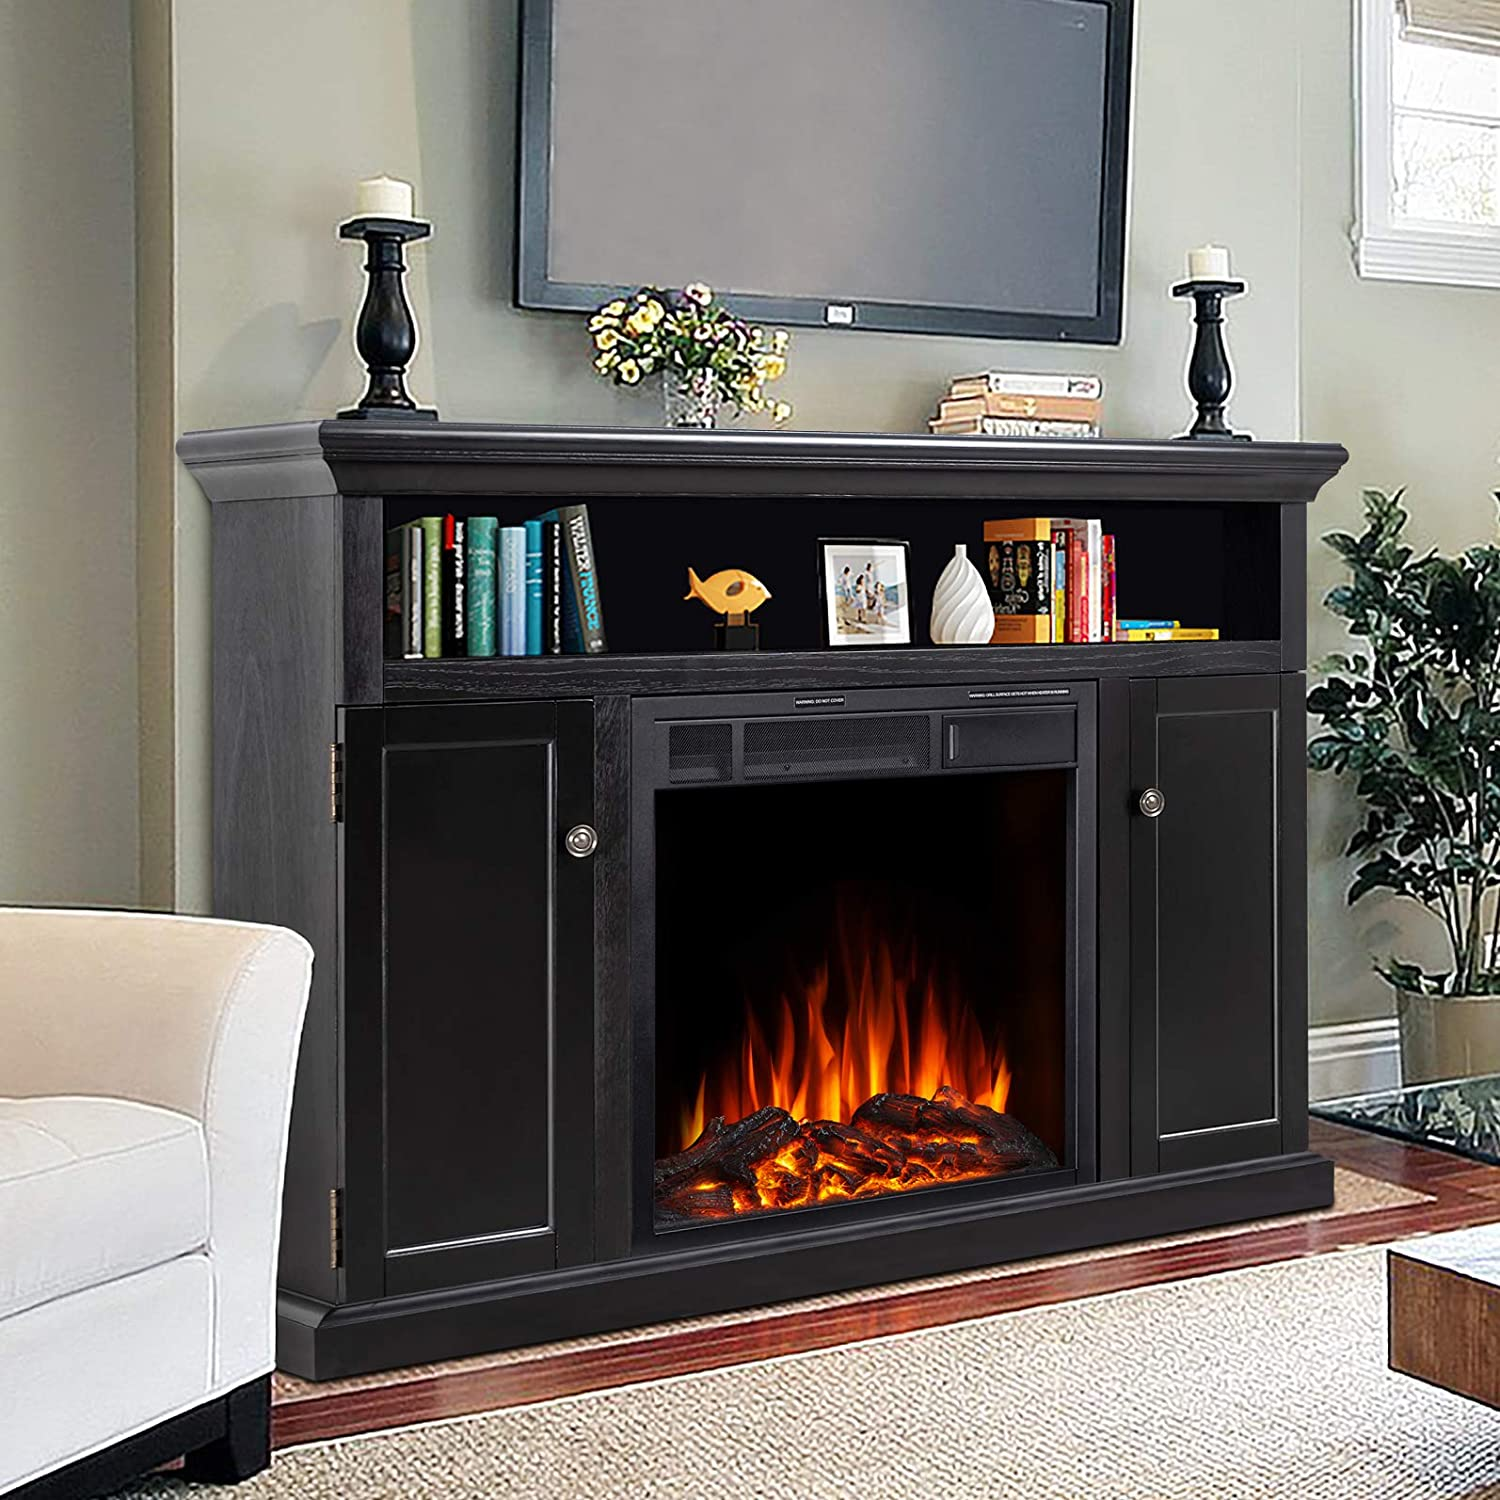 Buy JAMFLY Electric Fireplace TV Stand Wood Mantel for TV Up to 20 ...